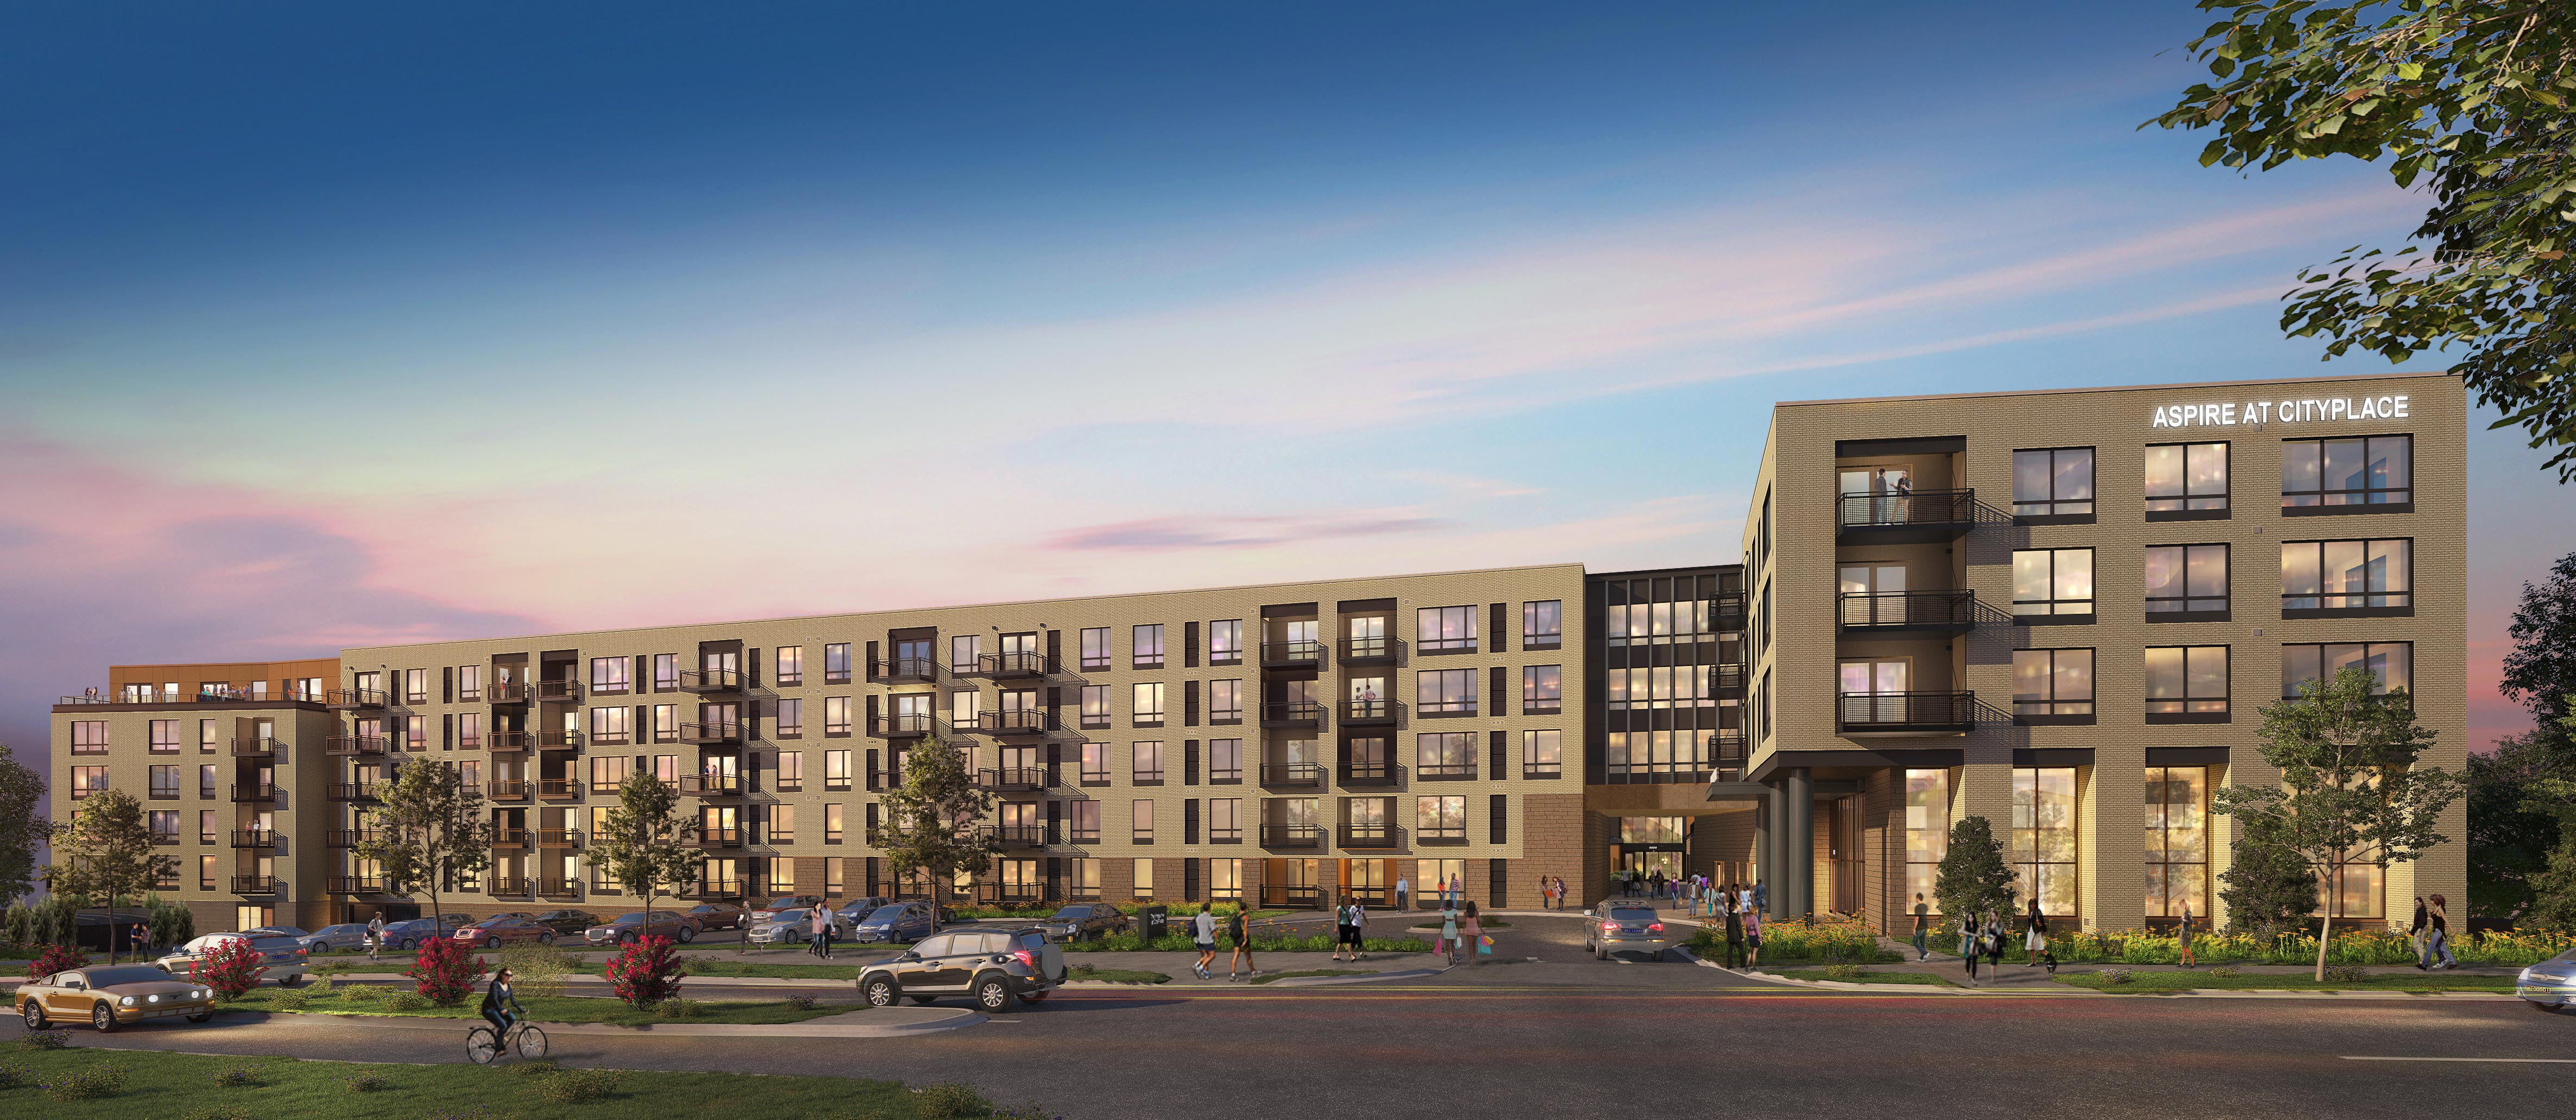 Rendering of Aspire at CityPlace residential development in Woodbury, MN